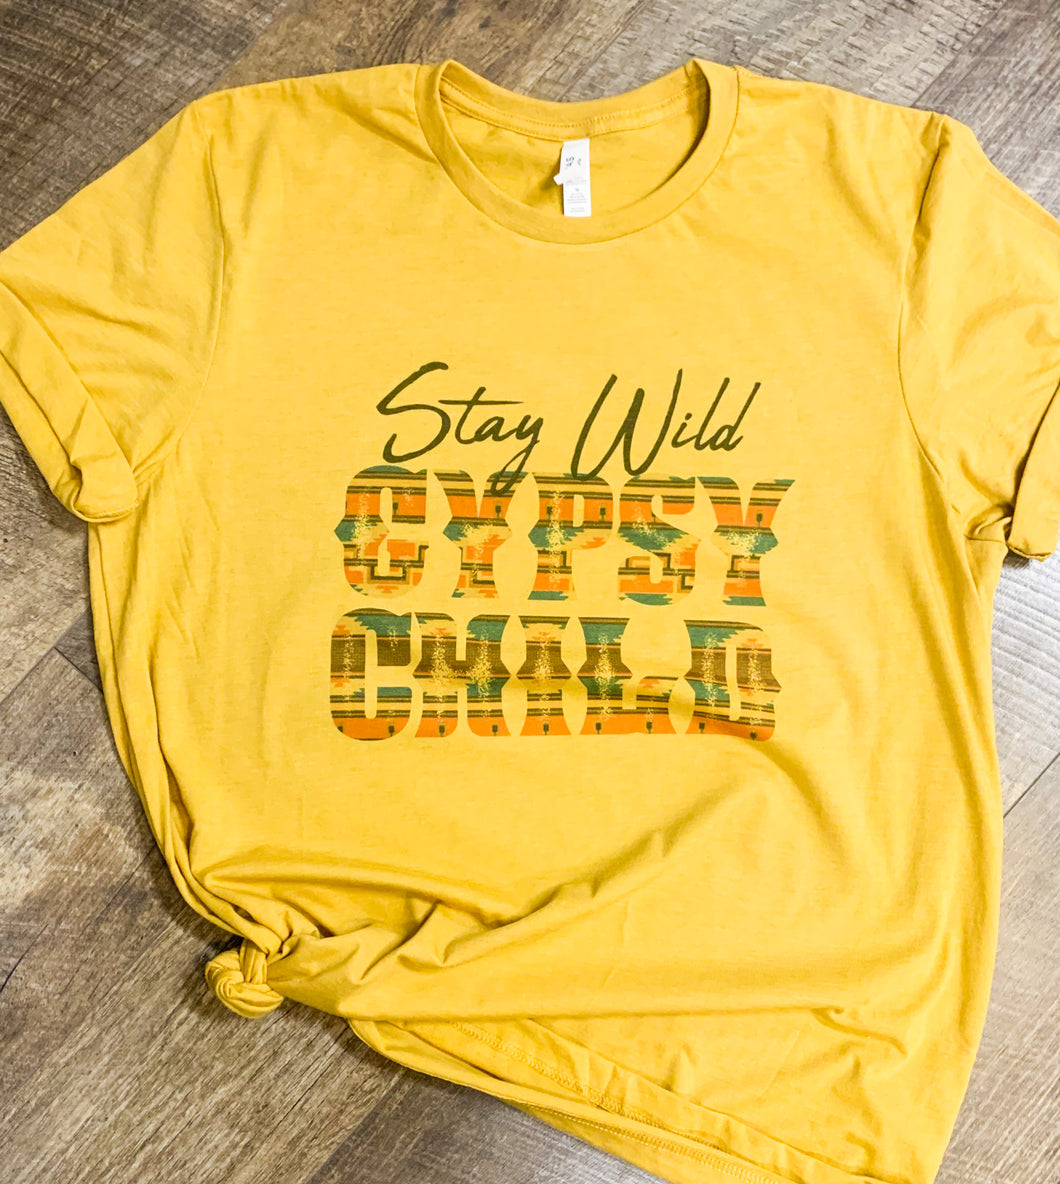 Stay Wild Gypsy Child || Permanent Print Soft T-Shirt